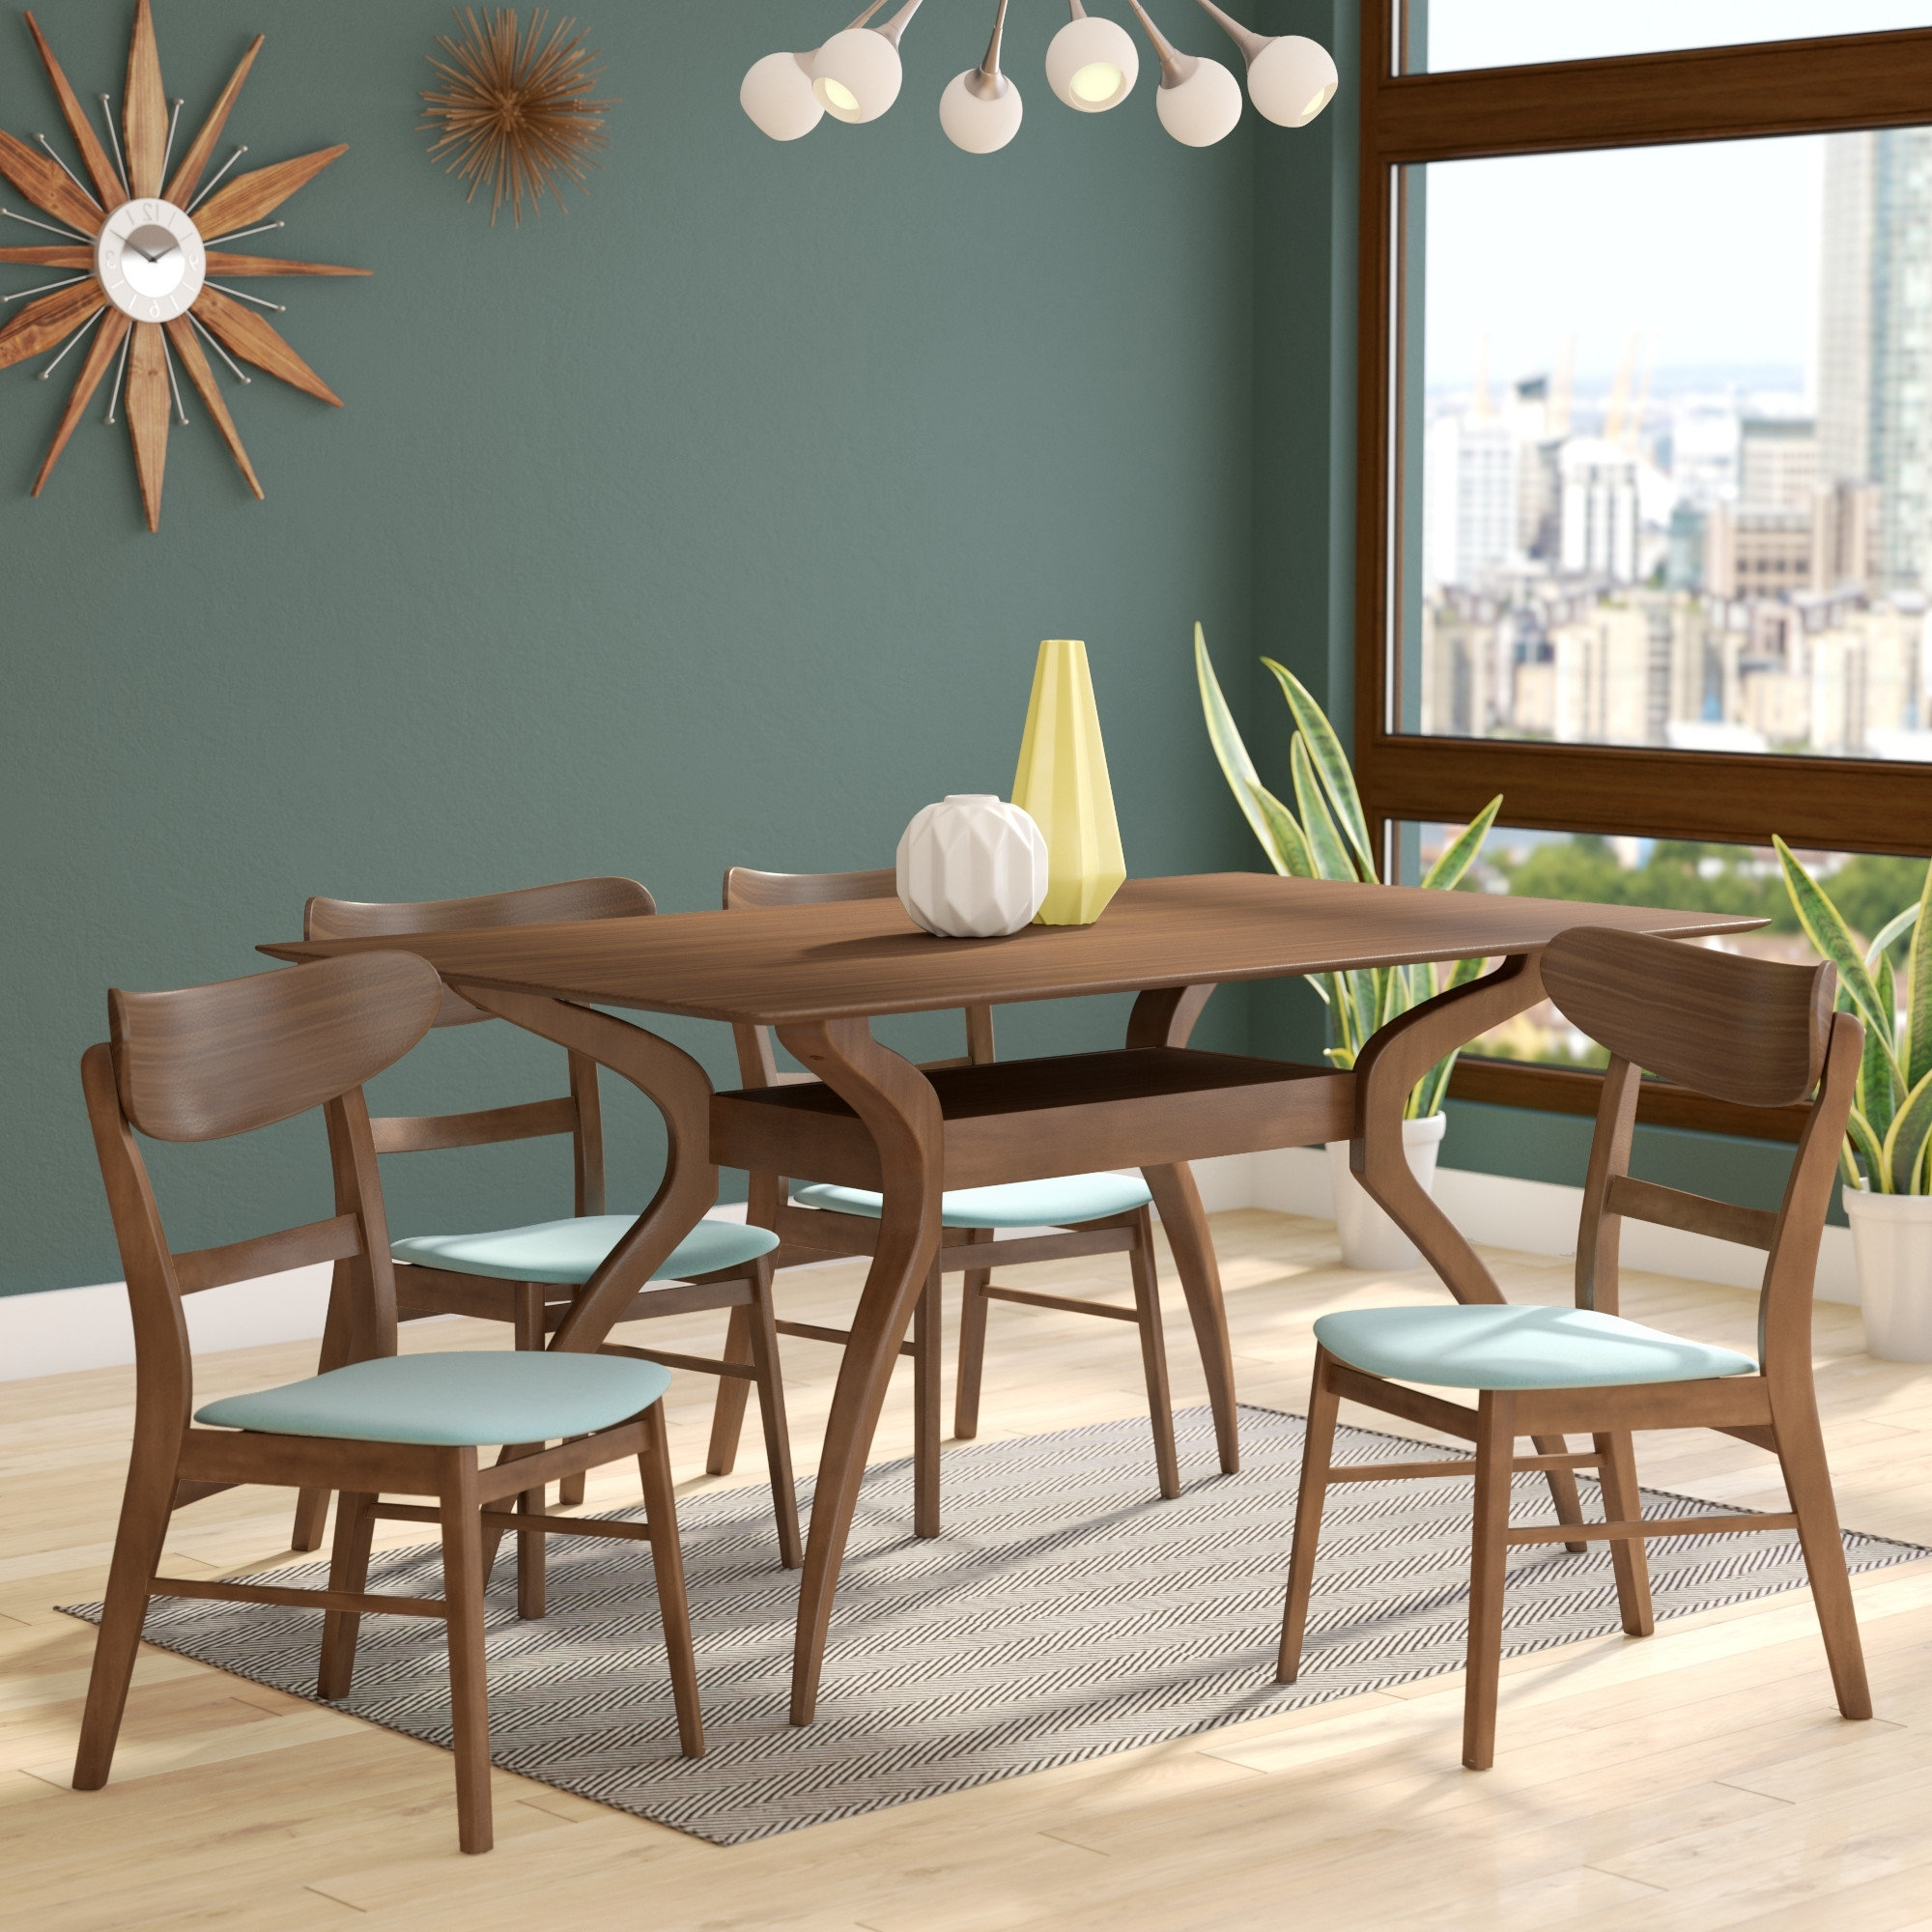 2017 Langley Street Patterson 5 Piece Dining Set & Reviews (Gallery 3 of 25)